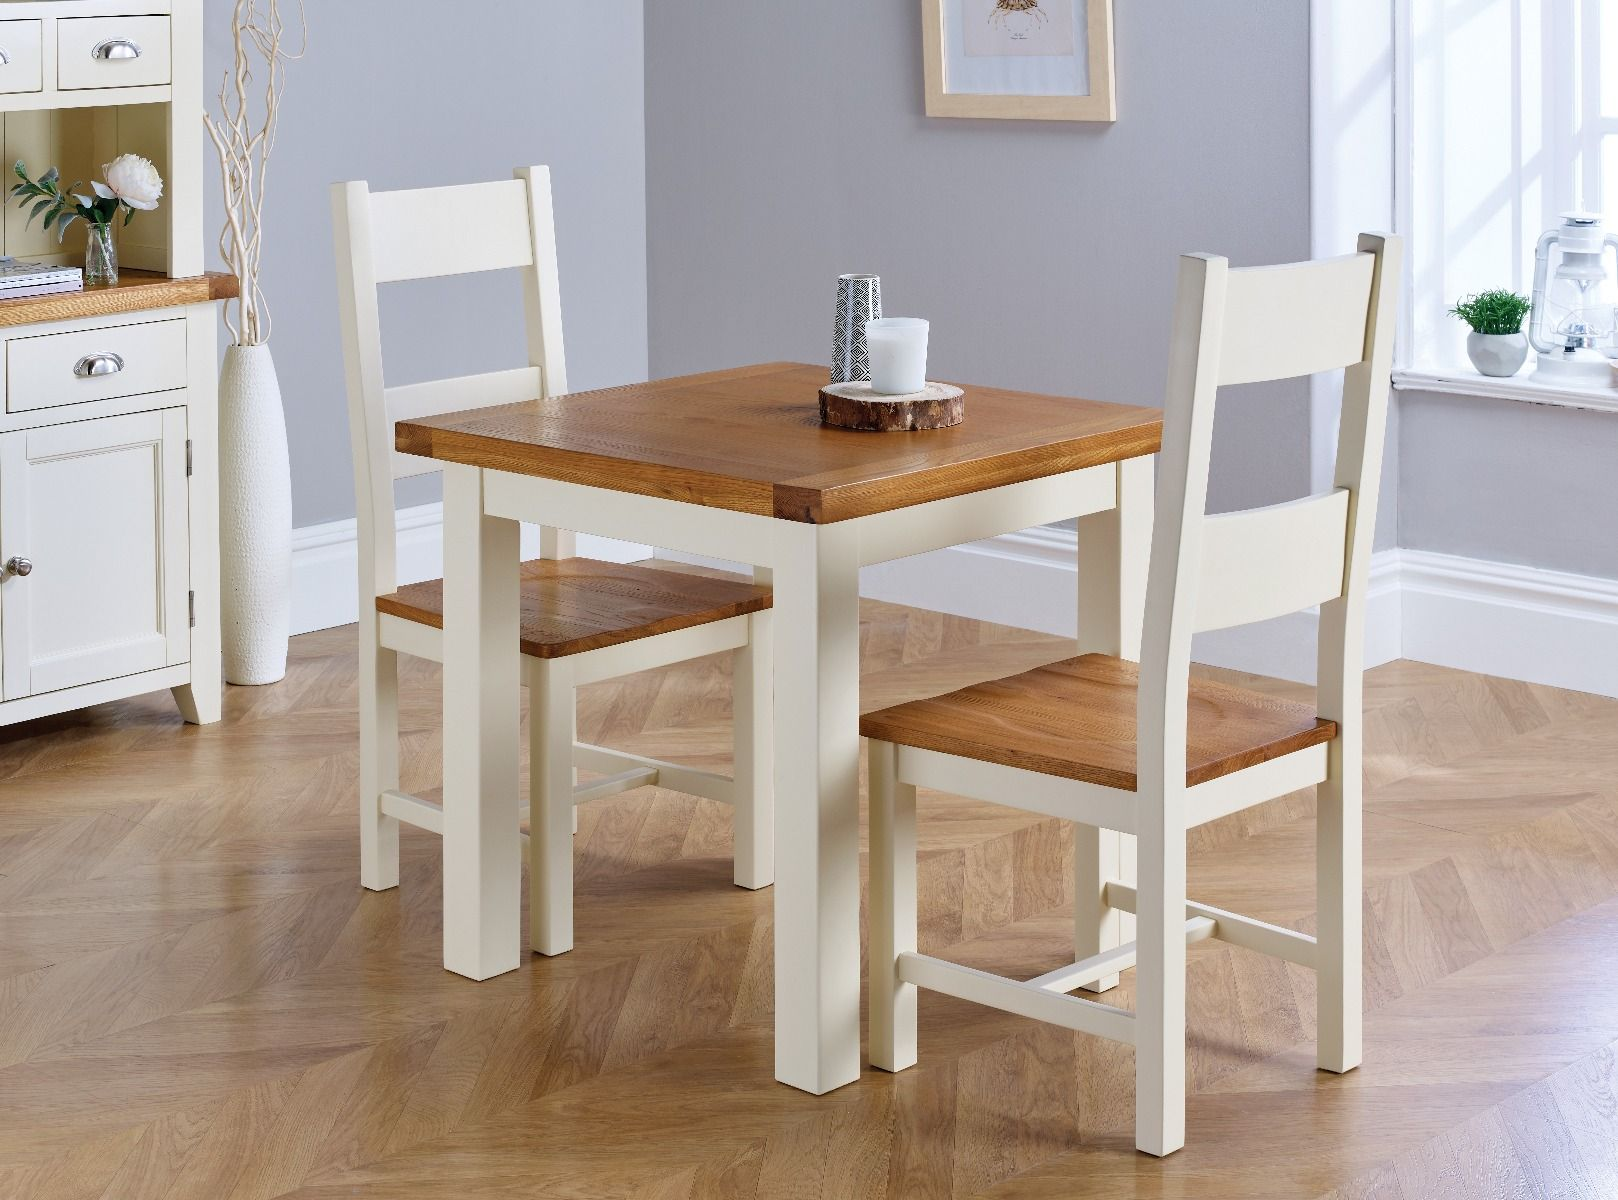 Small Dining Table Country Oak Small 80cm Cream Painted Square Oak Dining Table